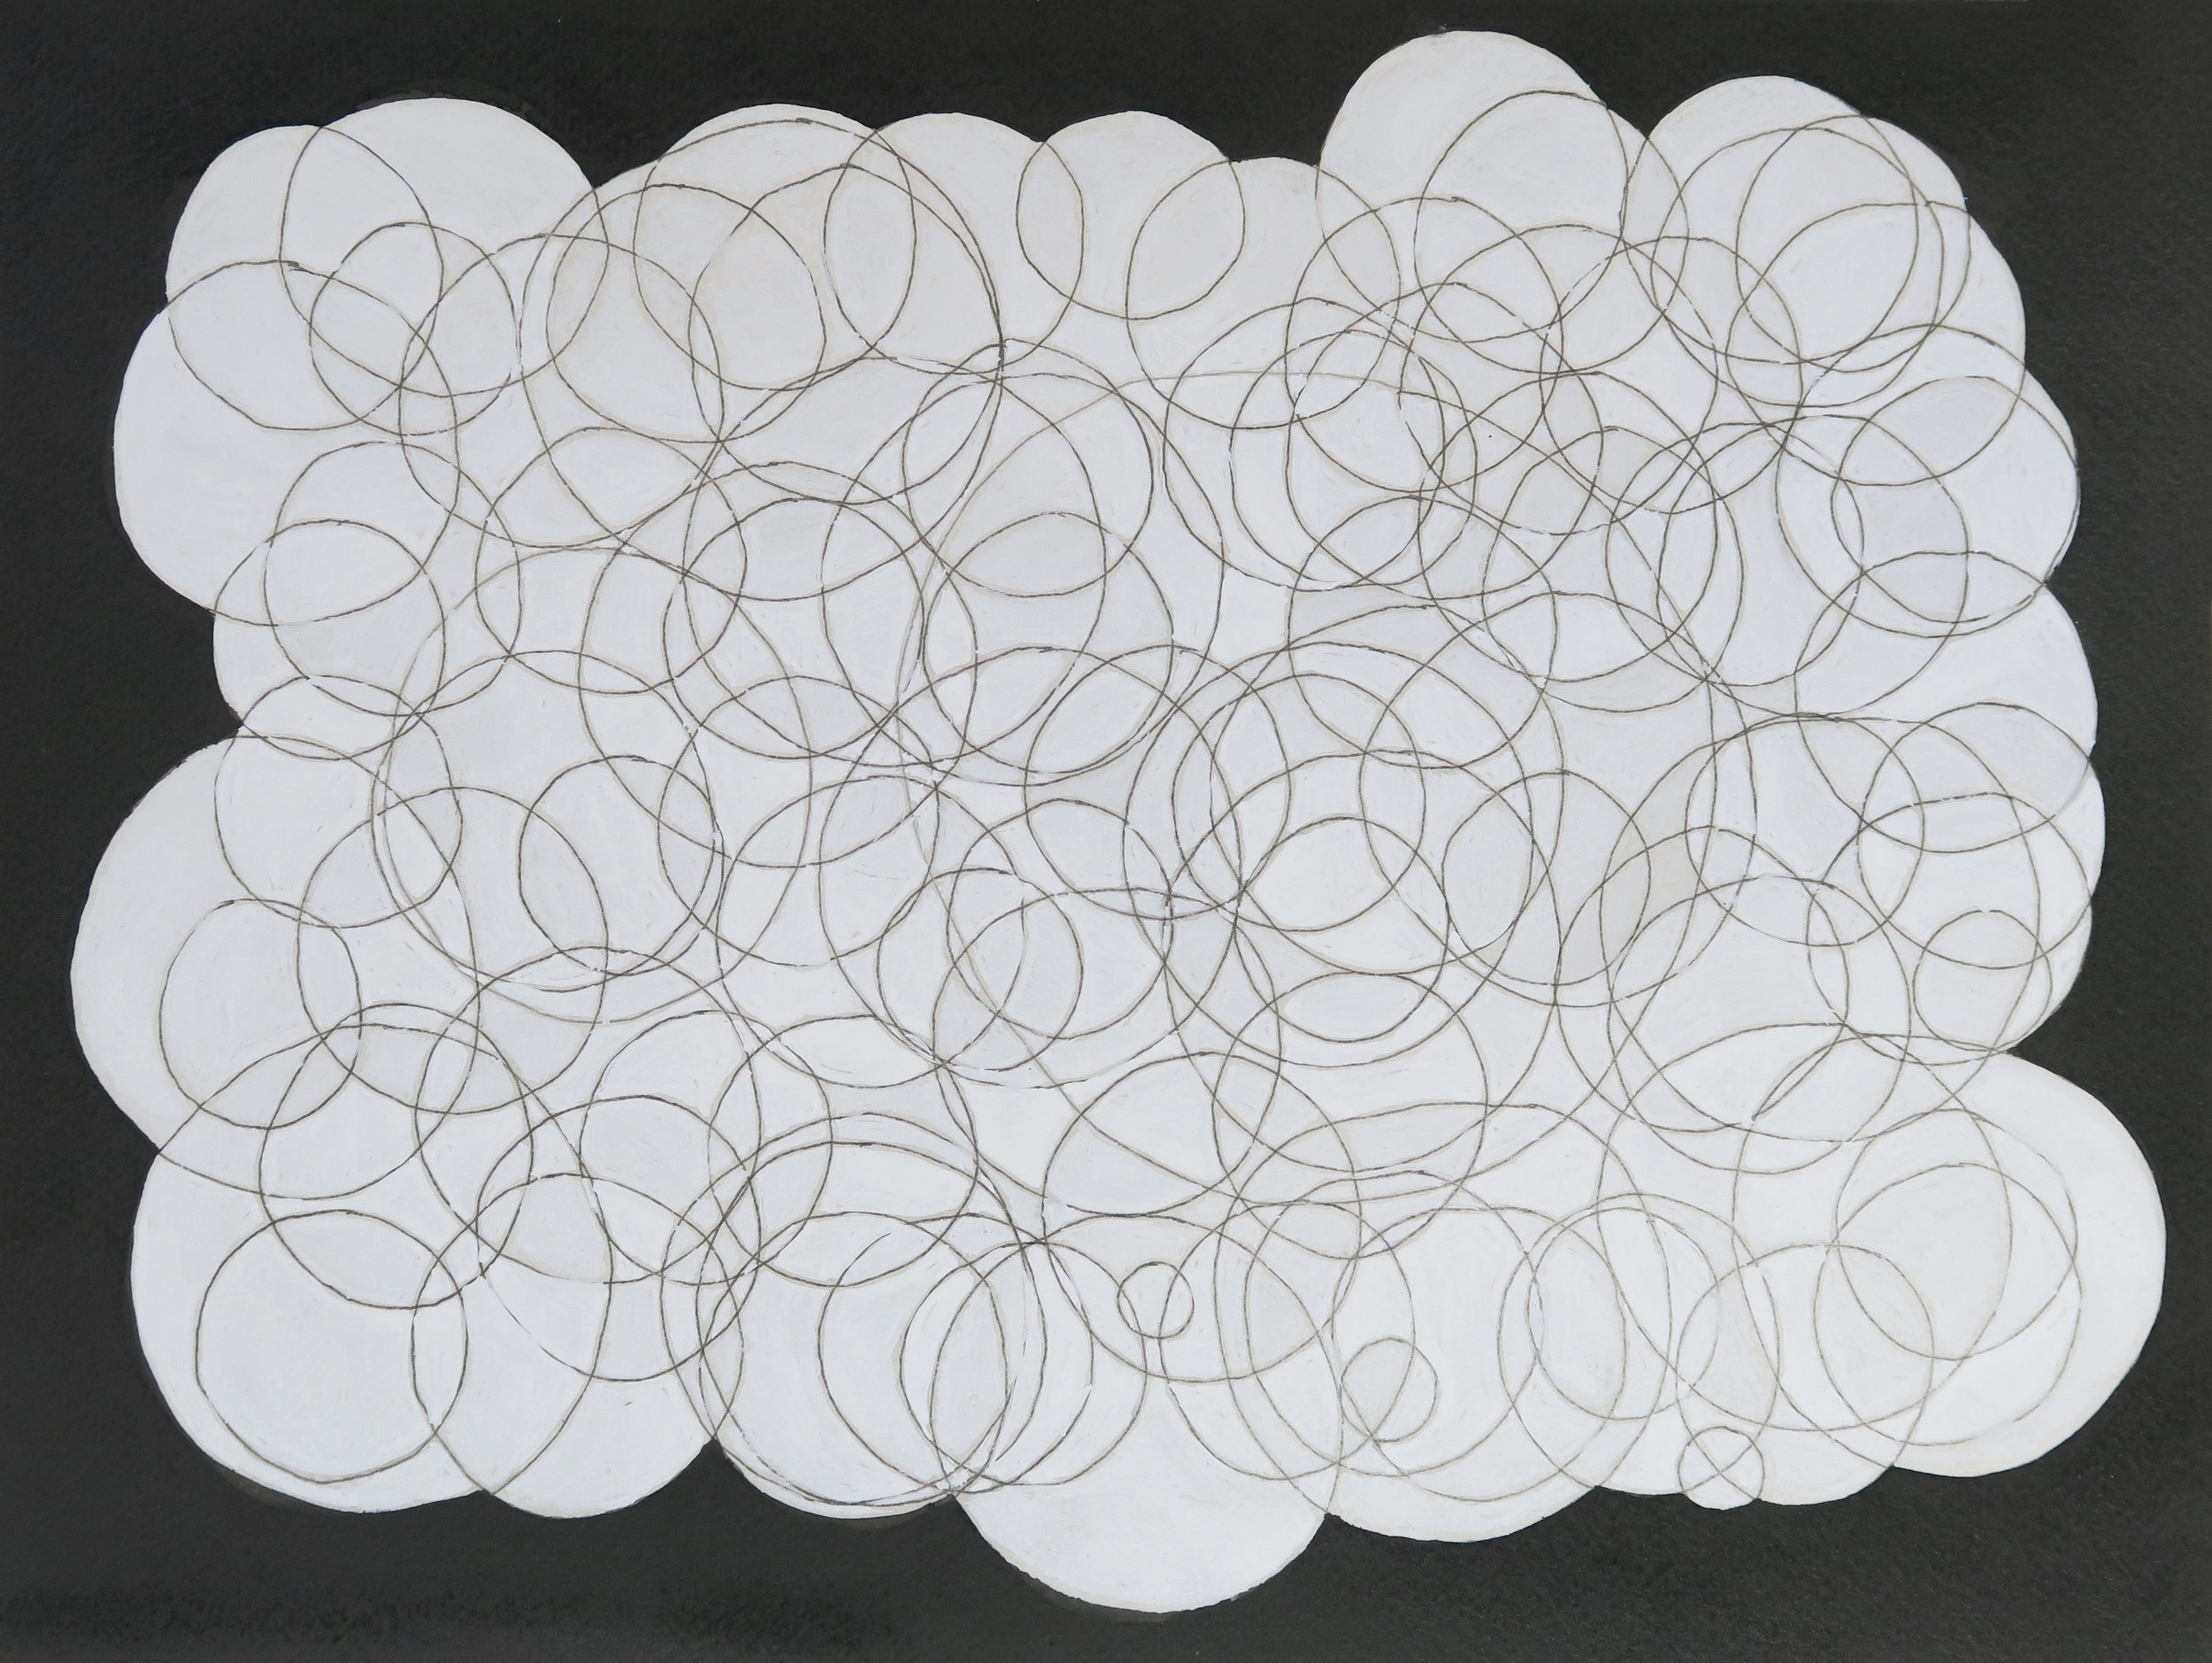 Circles drawing IX, 2011, pen & ink on paper, 24x32cm